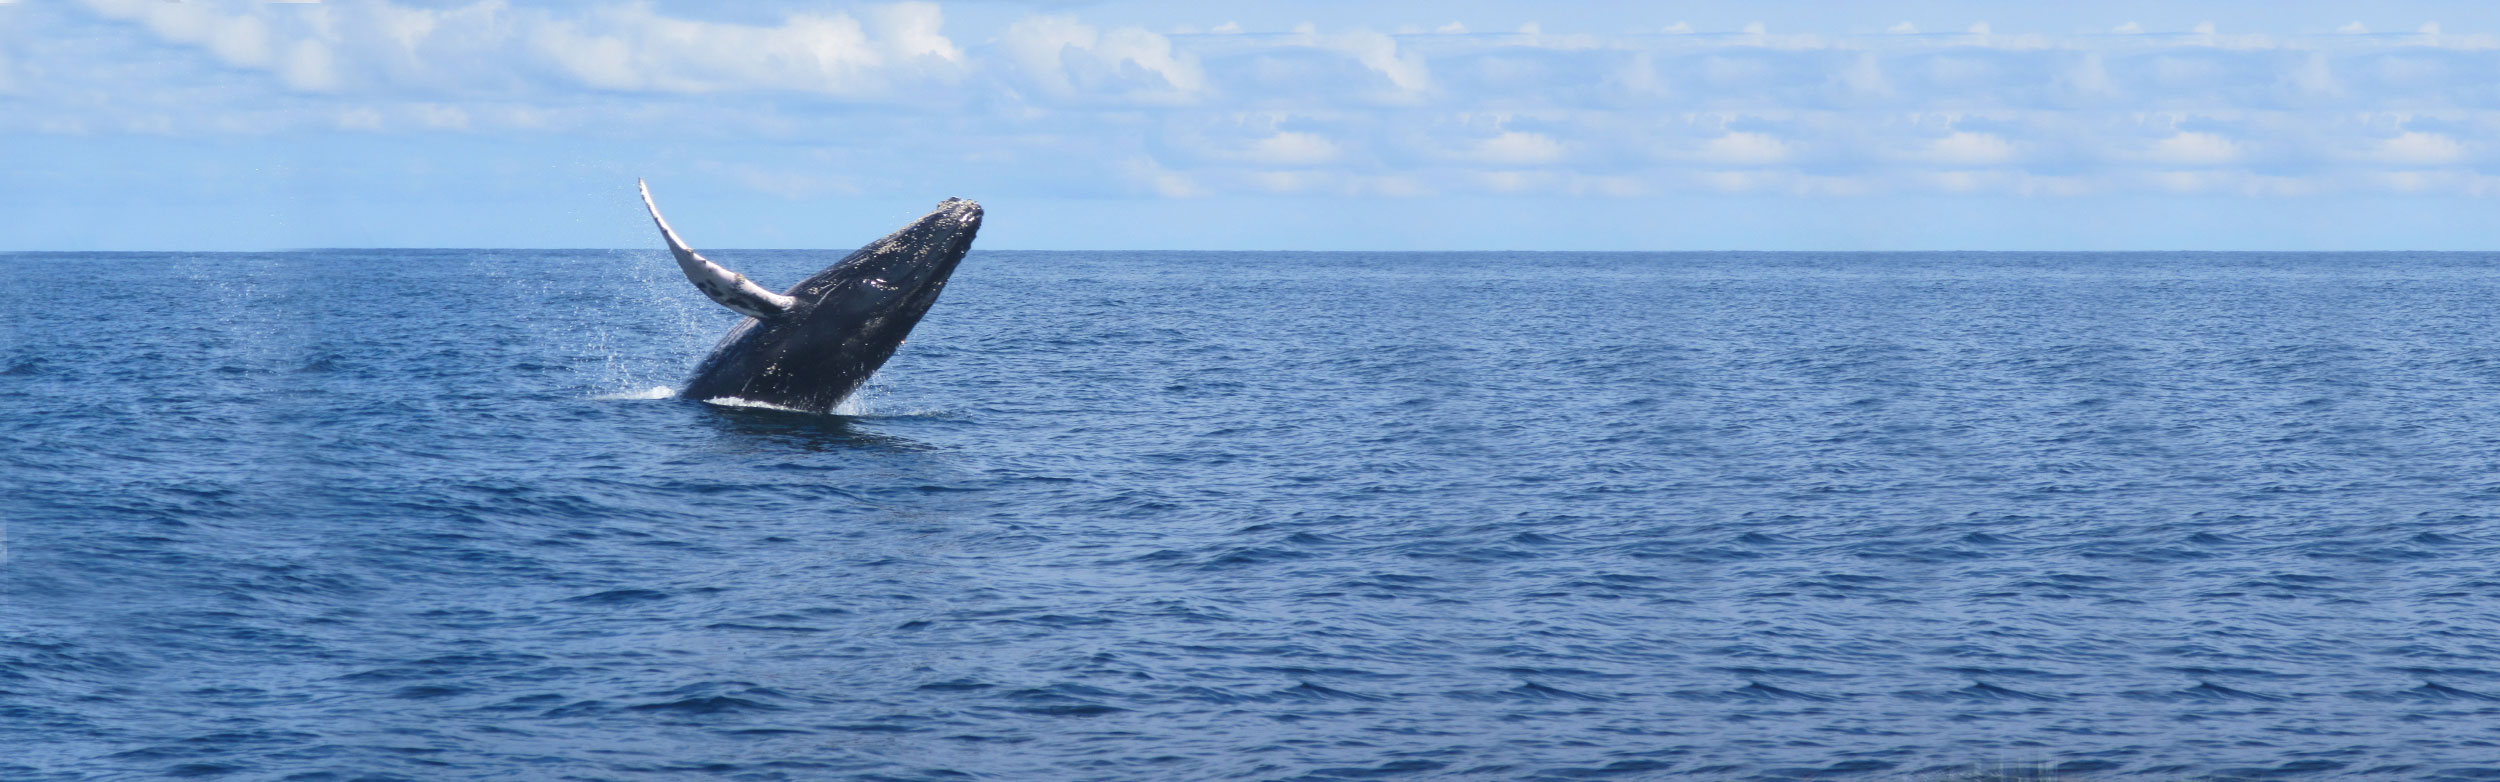 Whale Watching In the Pearl Islands